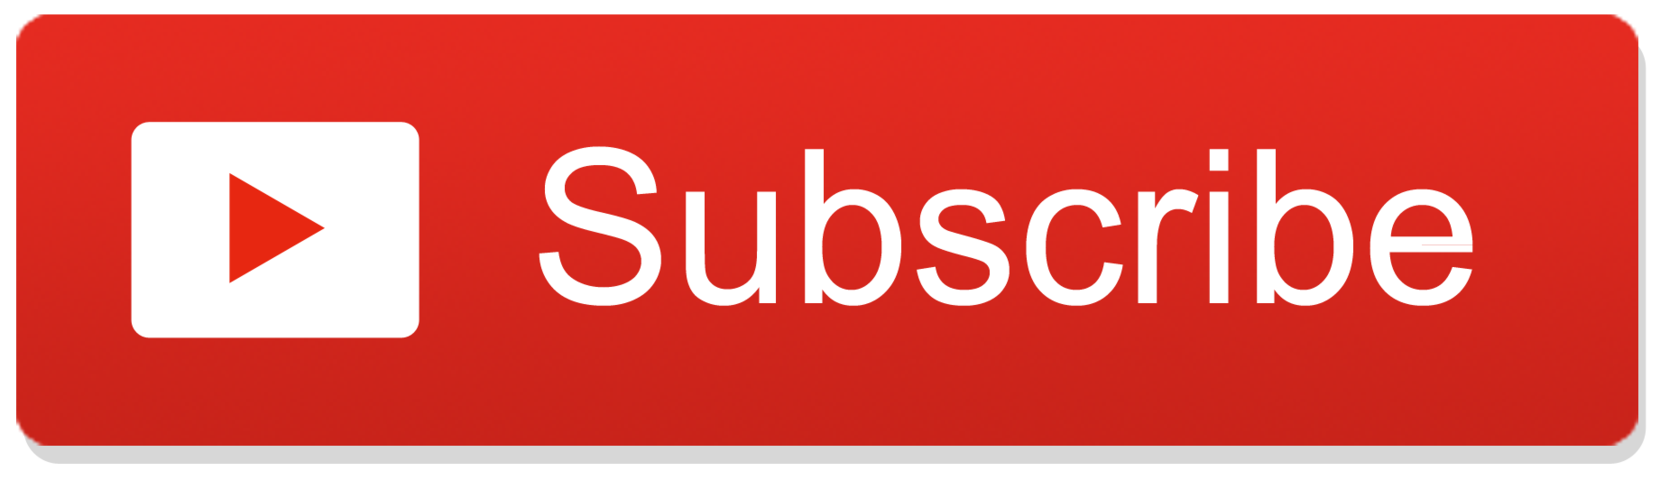 Youtube subscribe button 2014 by